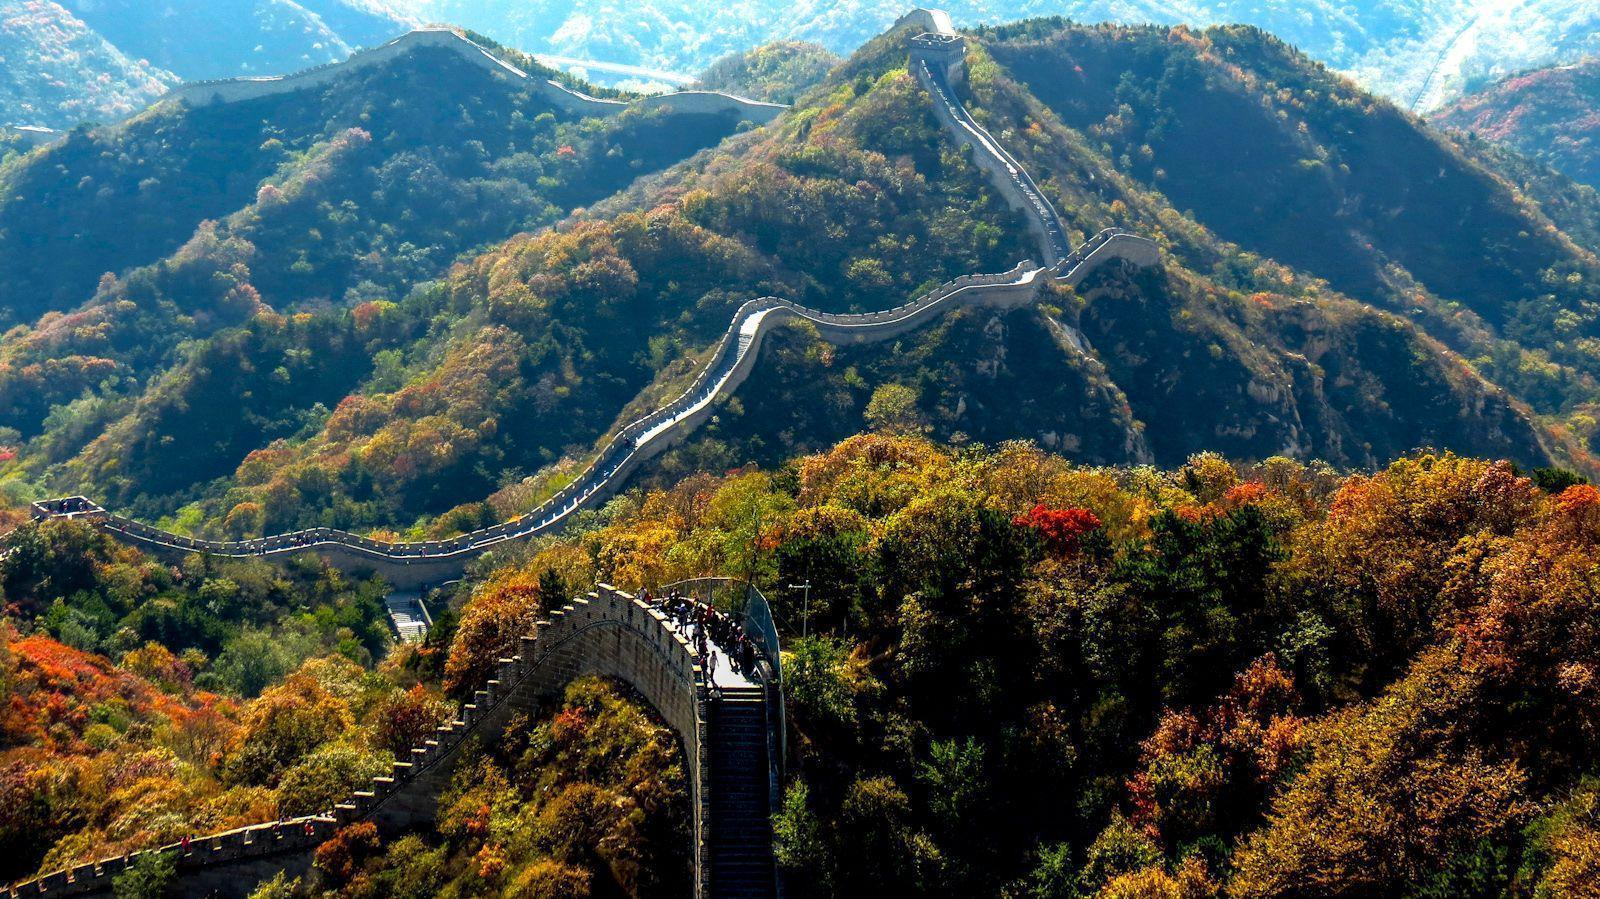 New Great Wall Of China Pics View Wallpapers